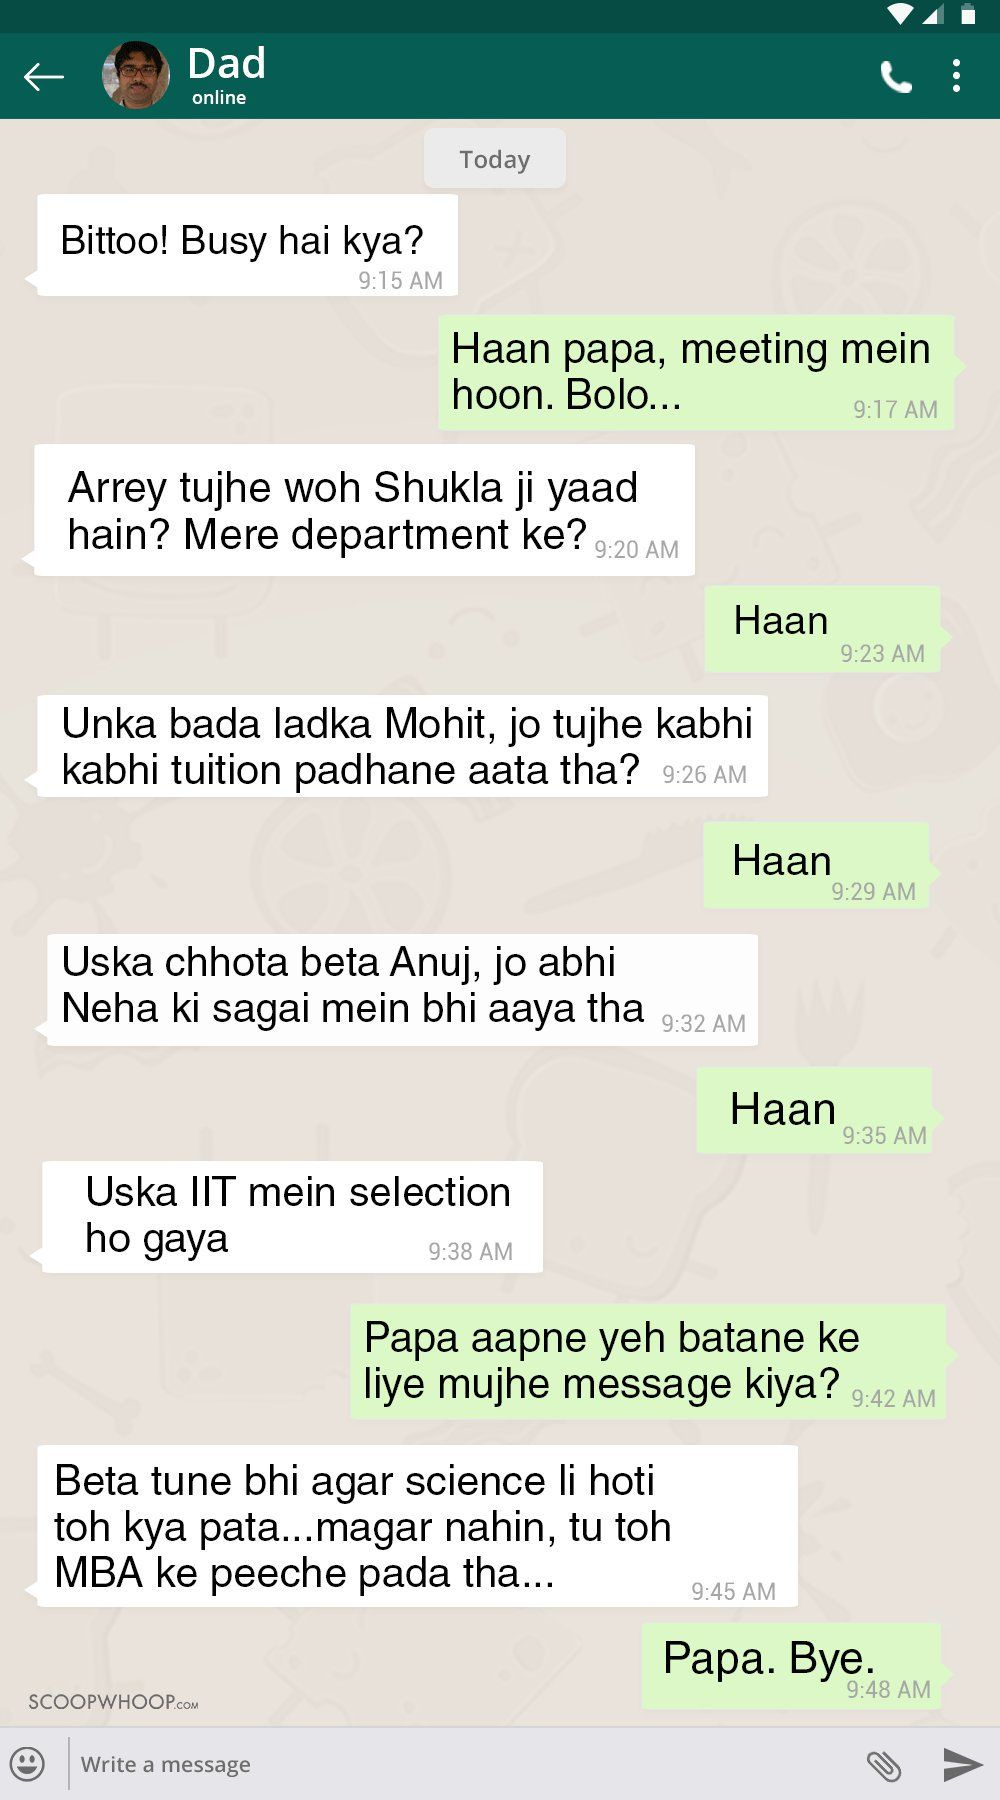 12 WhatsApp Conversations With Indian Parents That Are Hilariously